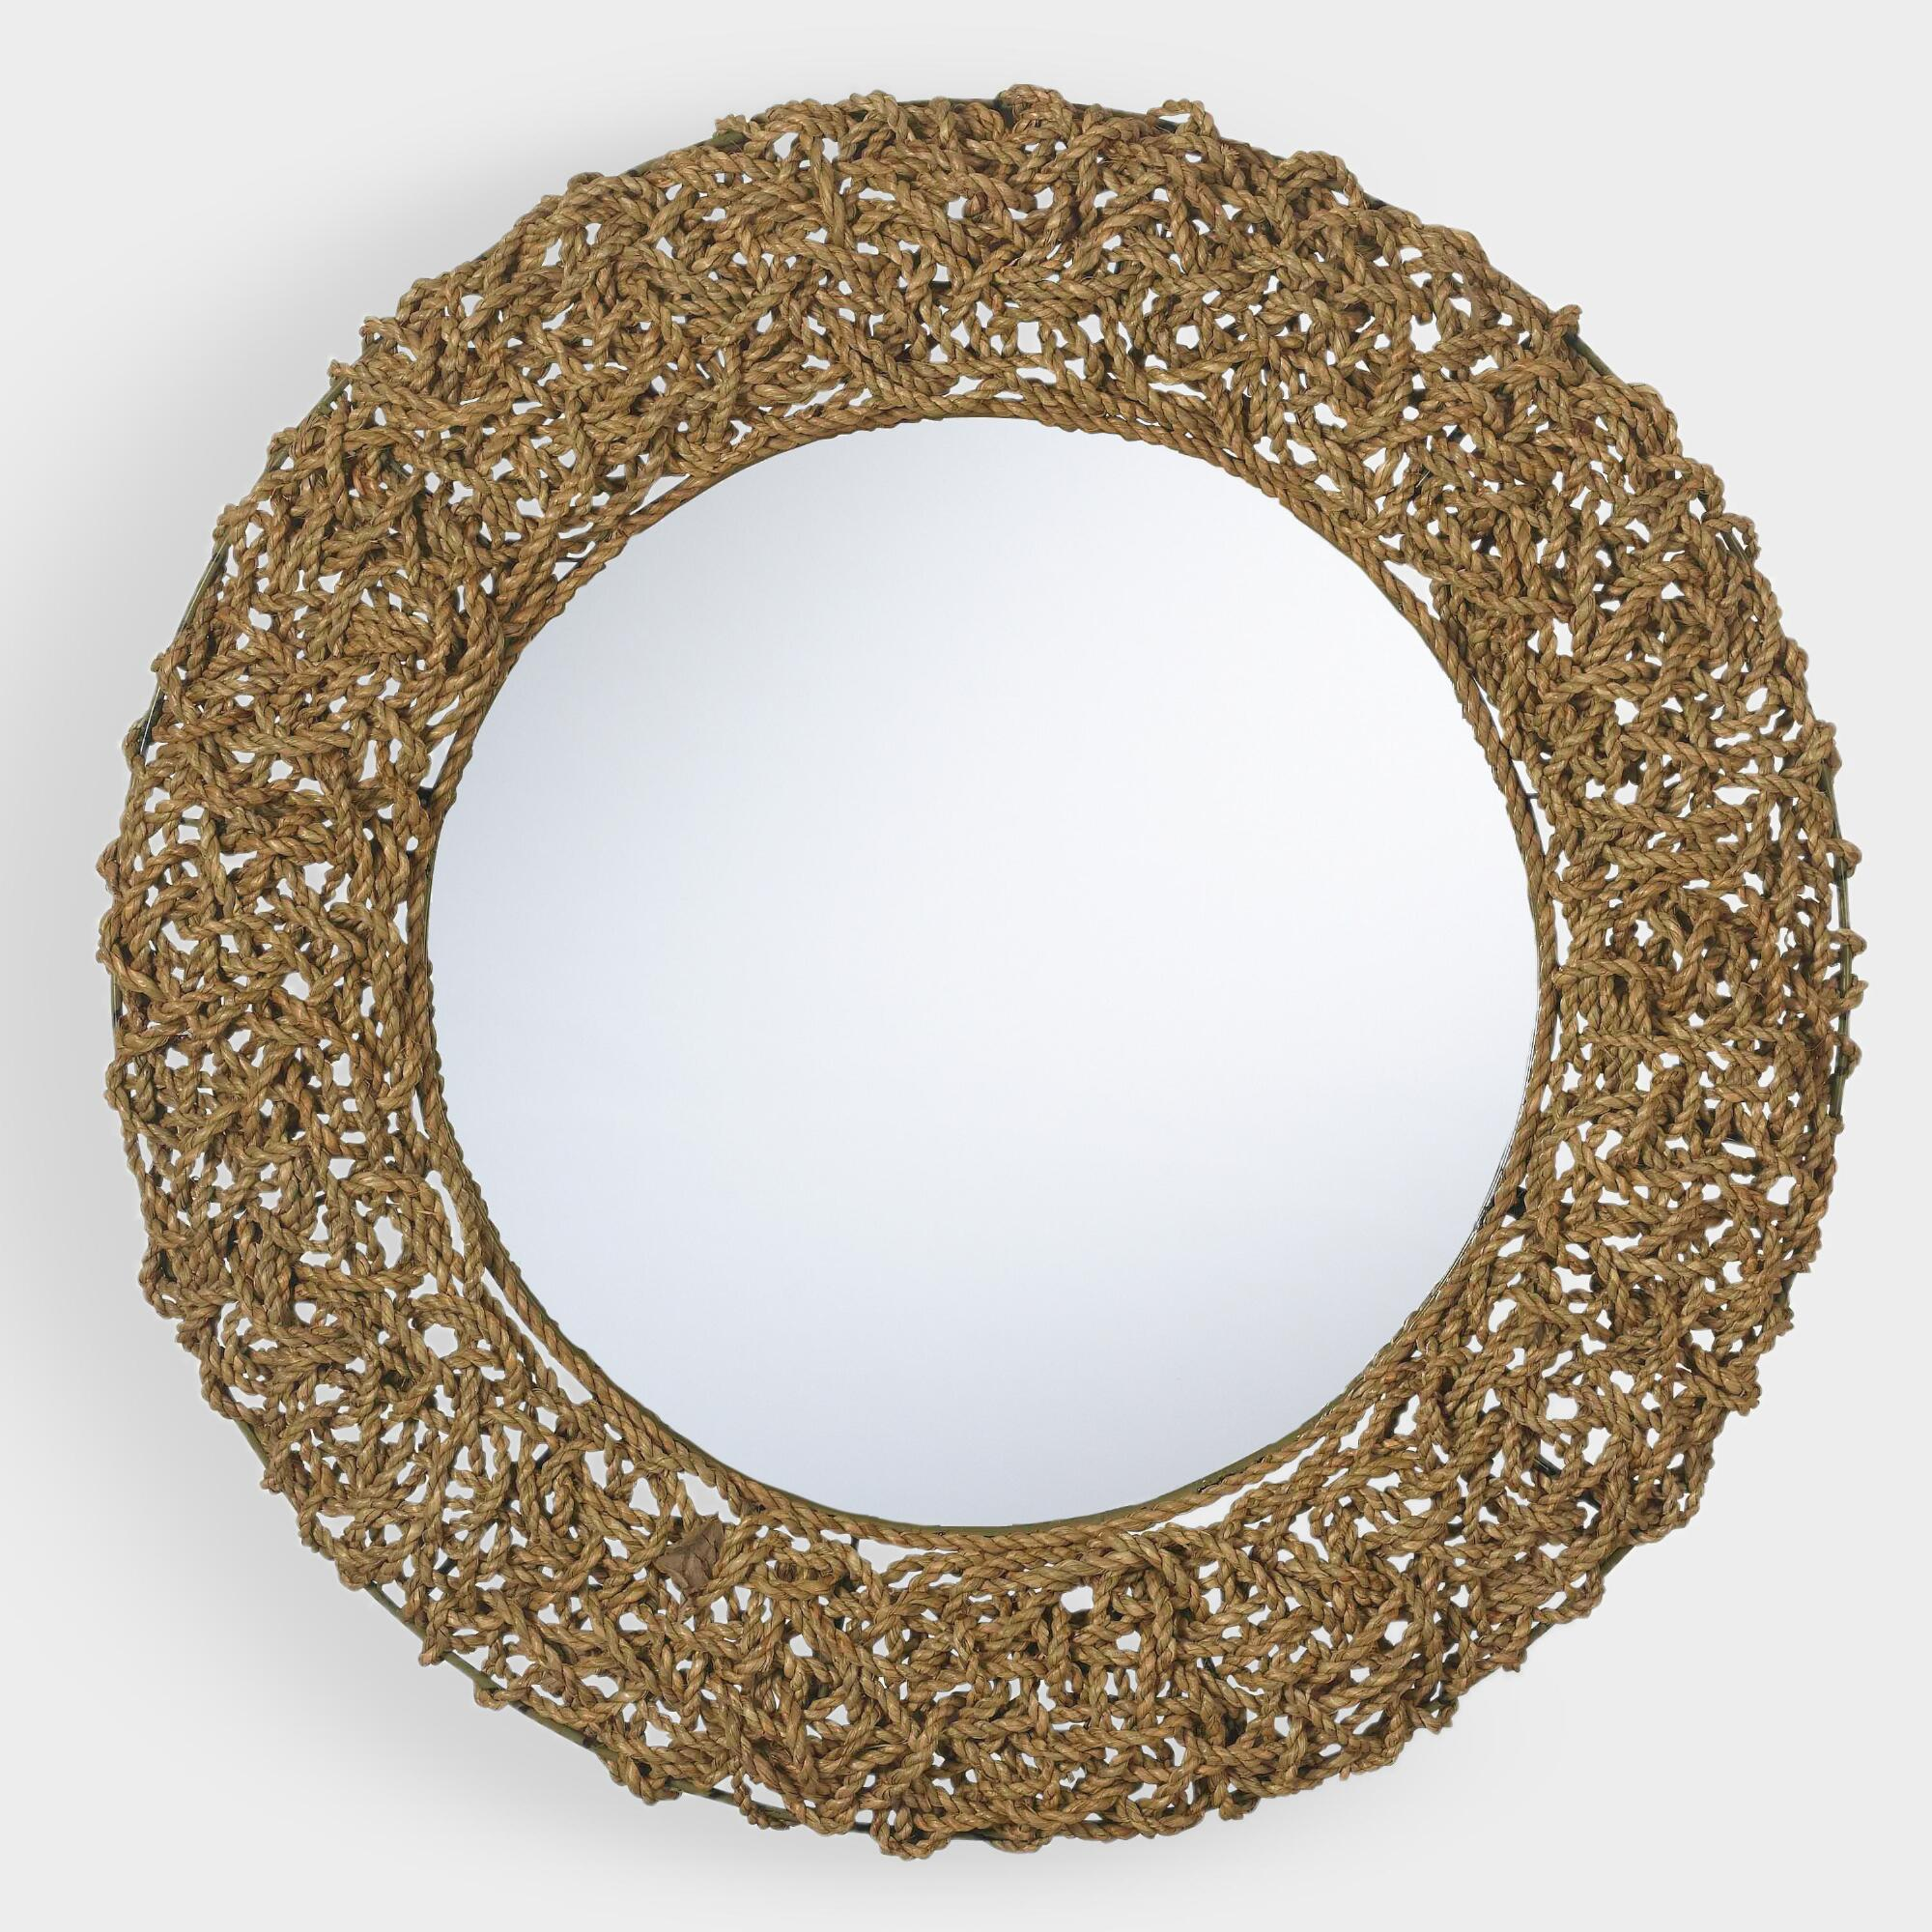 Round Natural Seagrass Rope Mirror - Natural Fiber - Medium by World Market